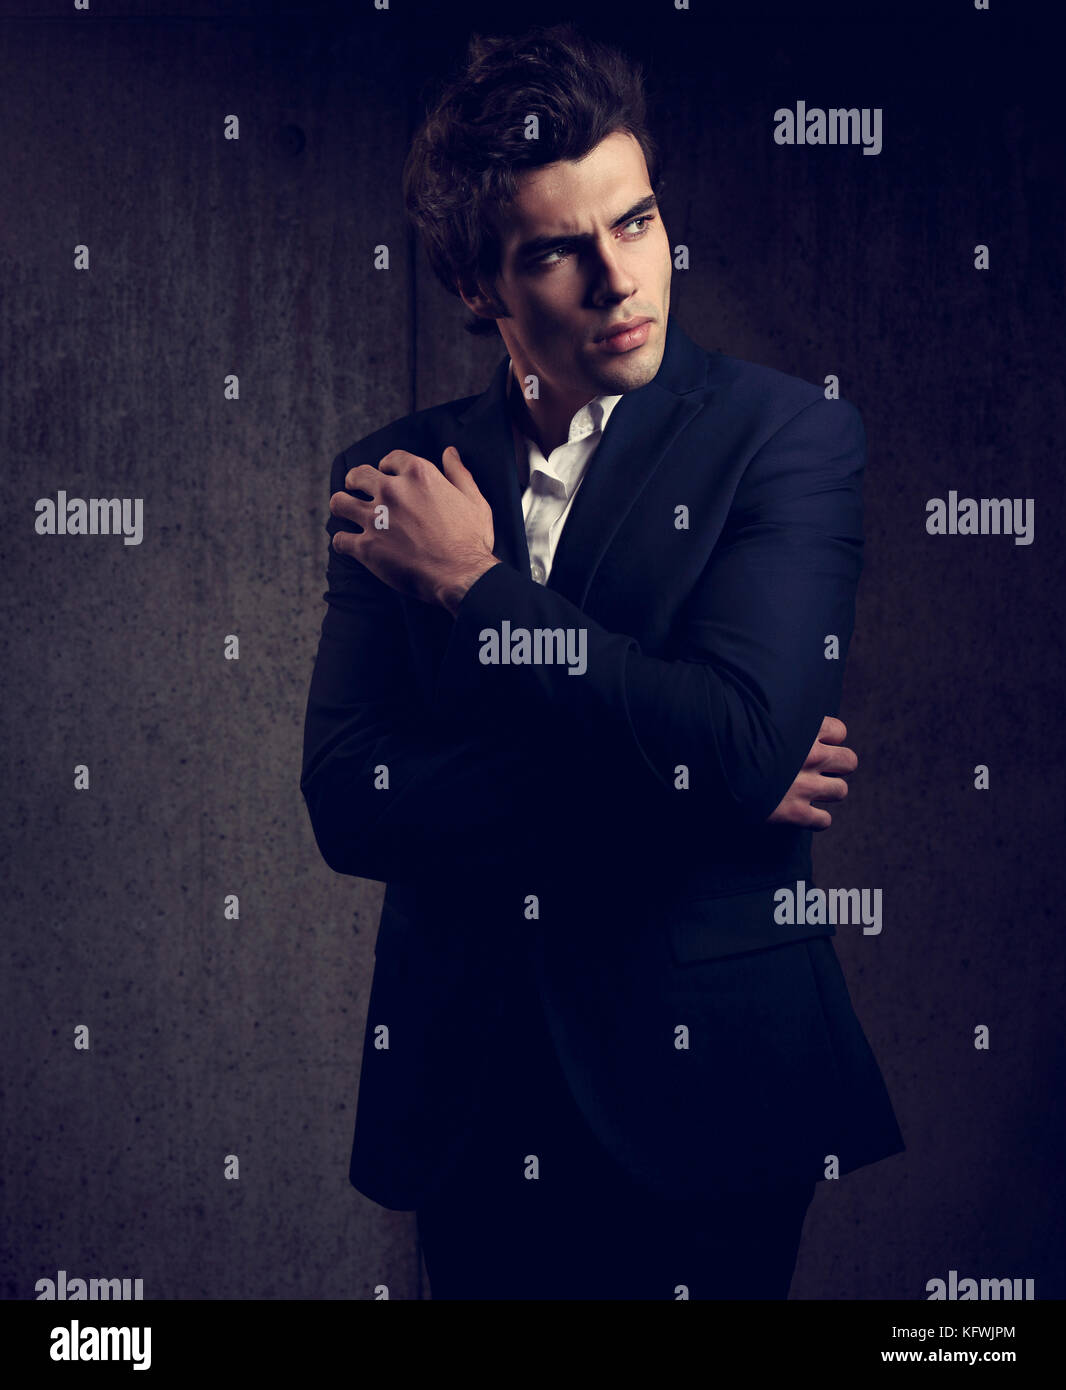 e61c19d4 Charismatic handsome male model posing in blue fashion suit and white style  shirt looking on dark shadow background. Toned closeup portrait